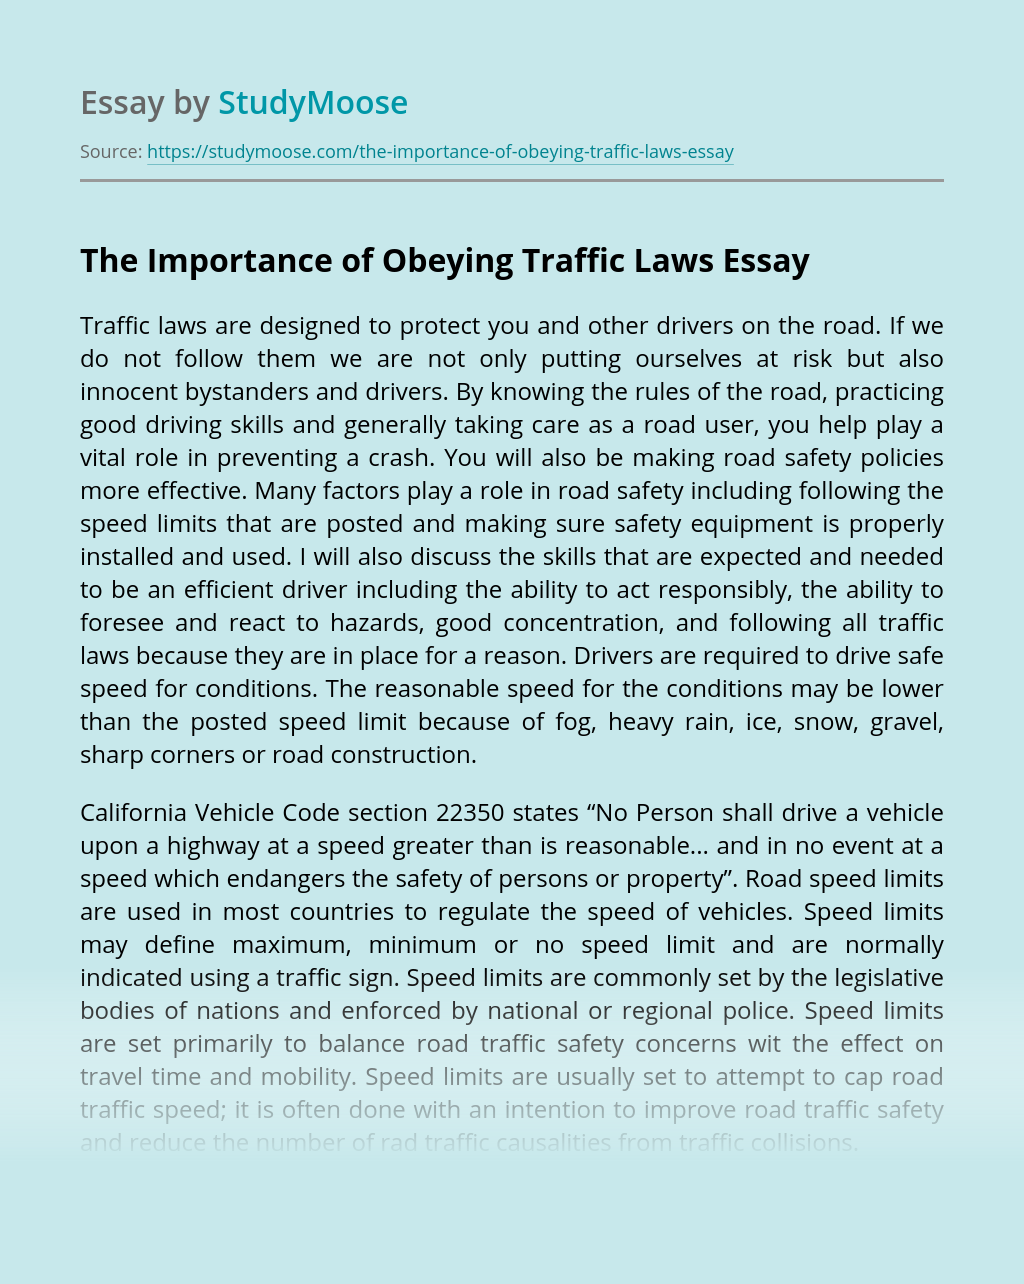 The Importance of Obeying Traffic Laws